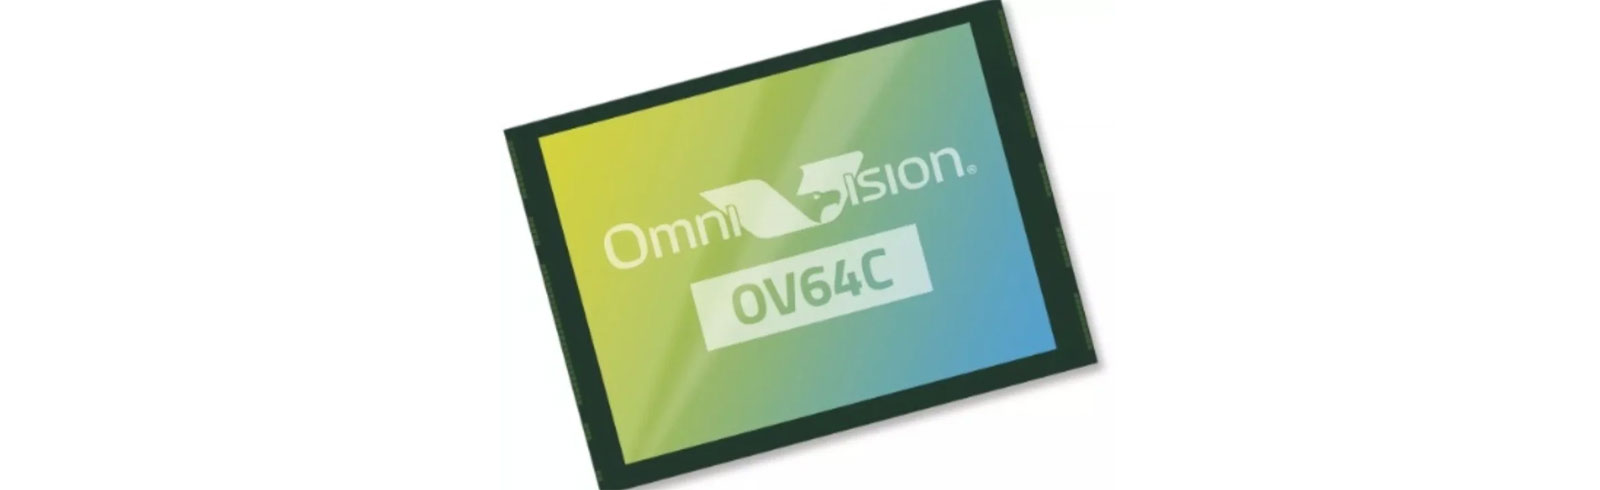 OmniVision unveils a 64MP image sensor for mobile devices